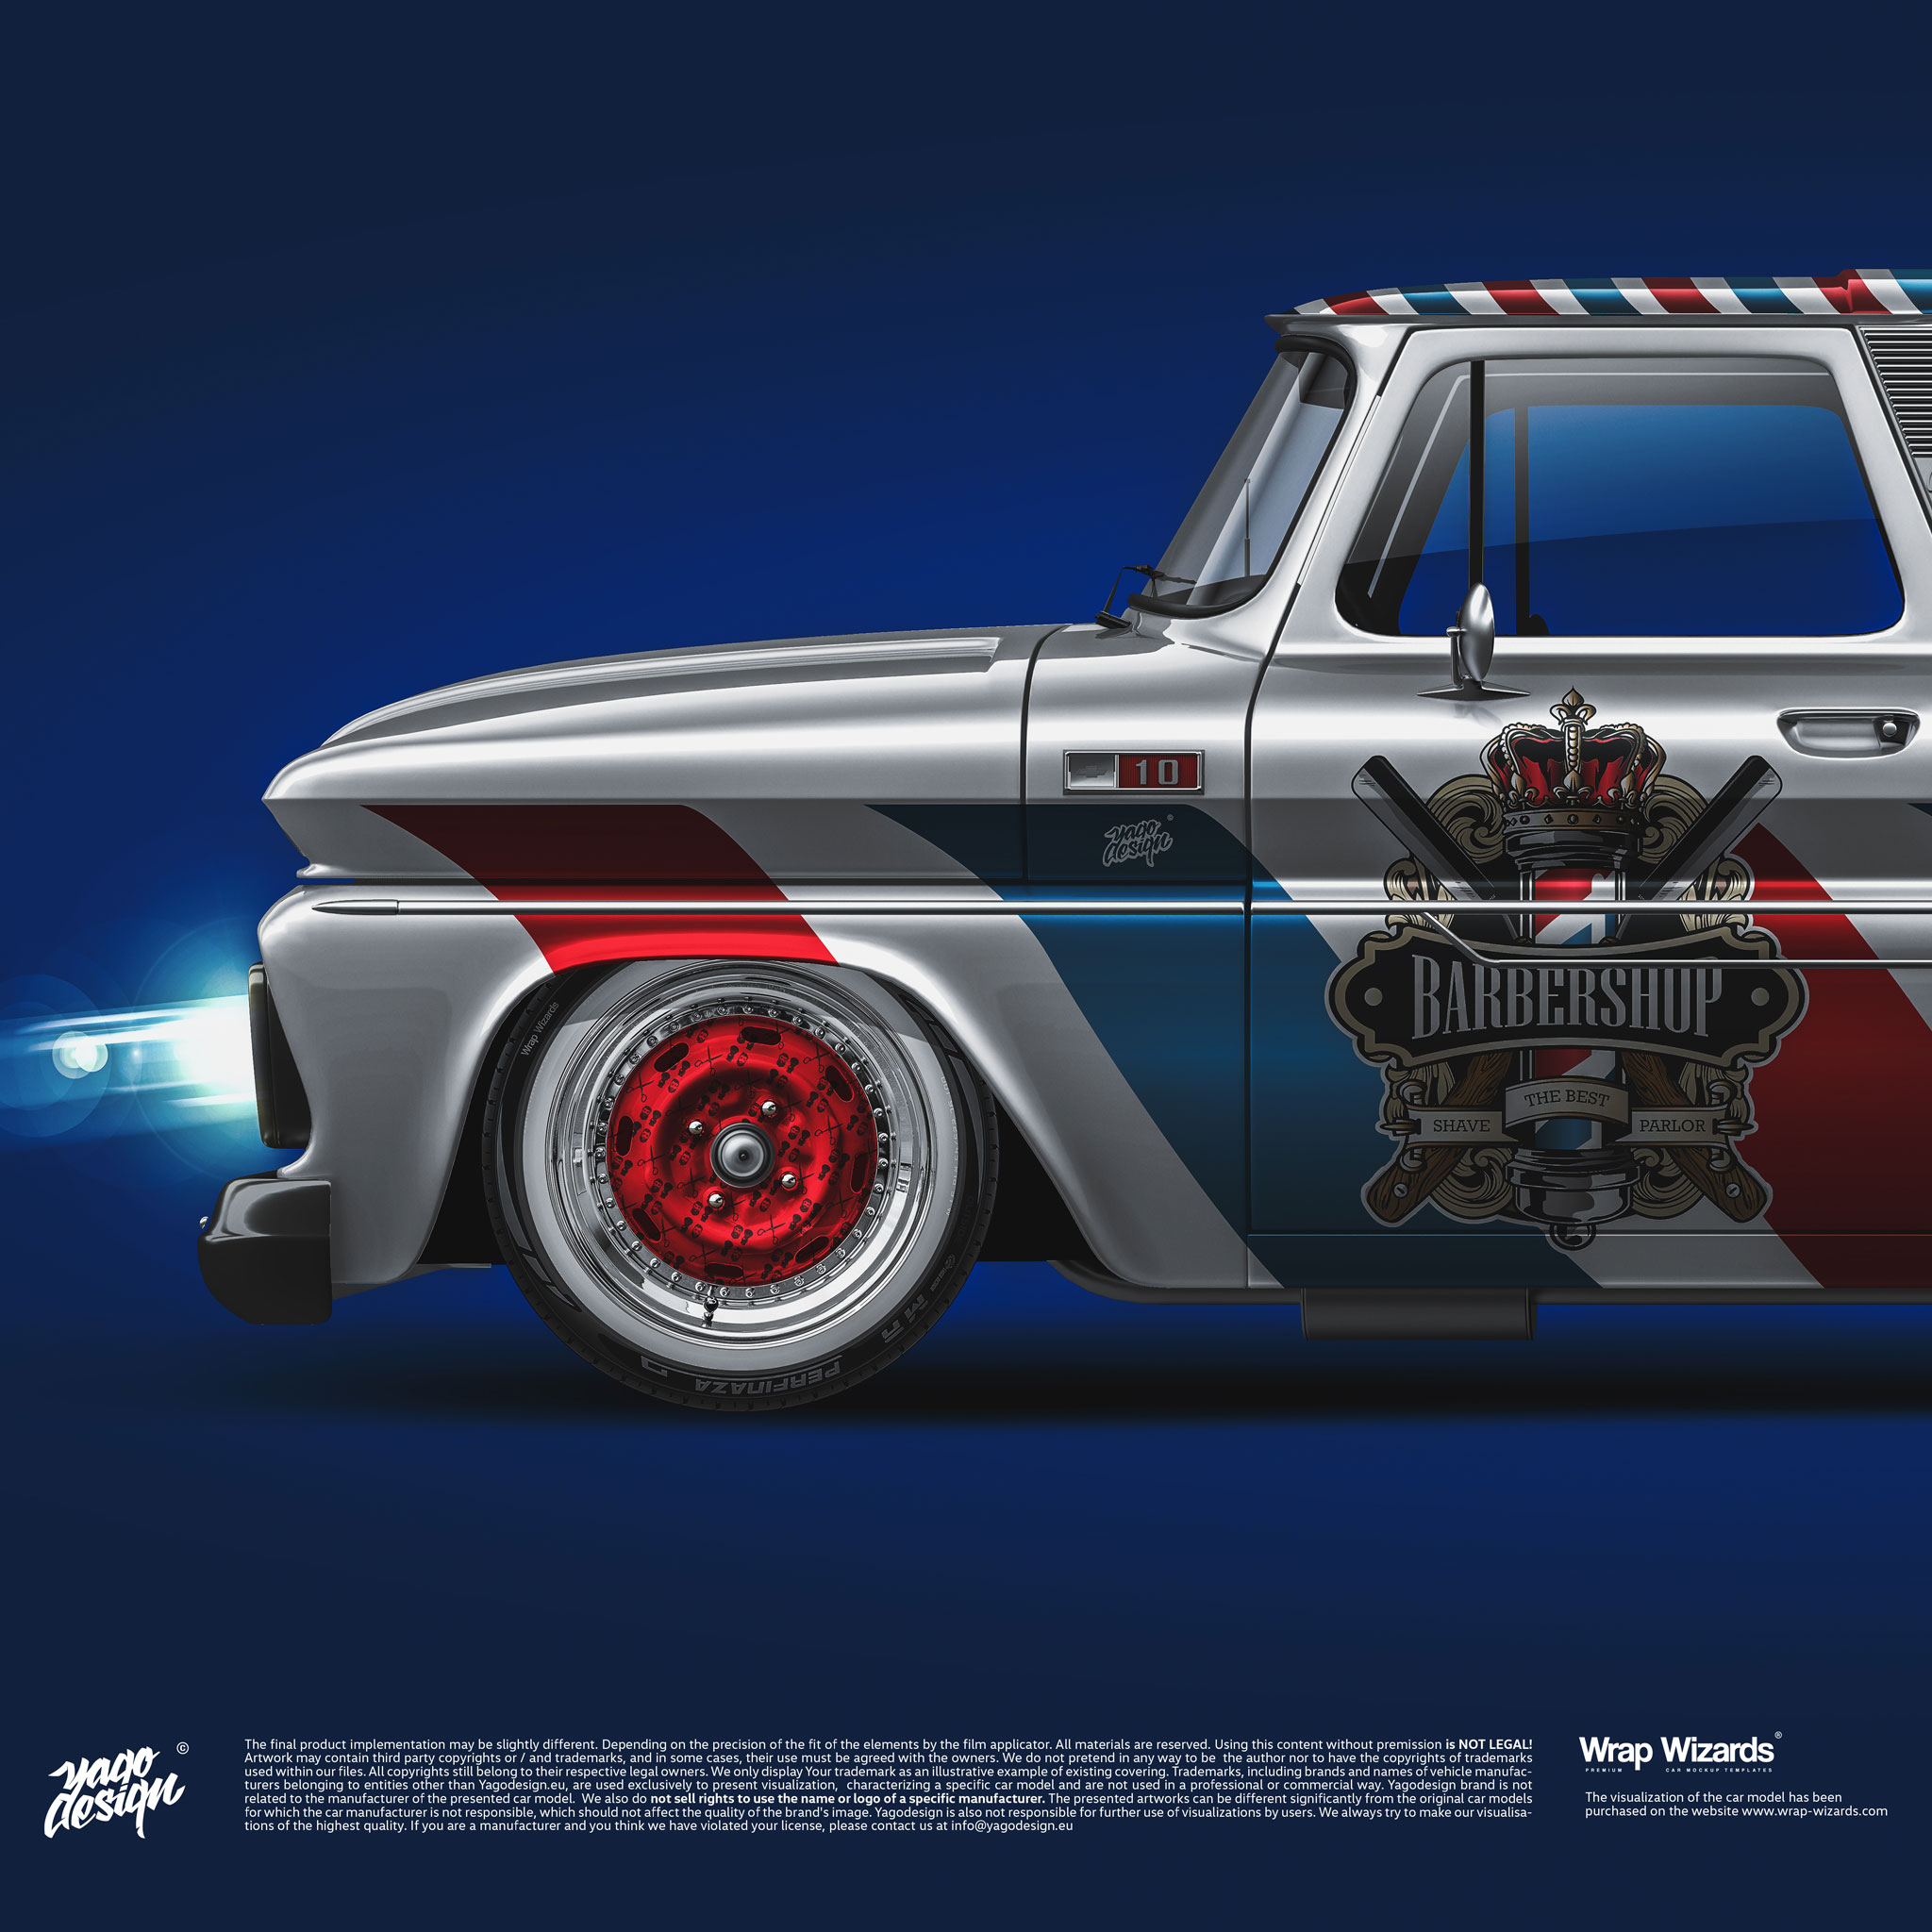 Chevrolet-C-10-by-Yagodesign-2020-Car-Wrapping-Design-Studio-1